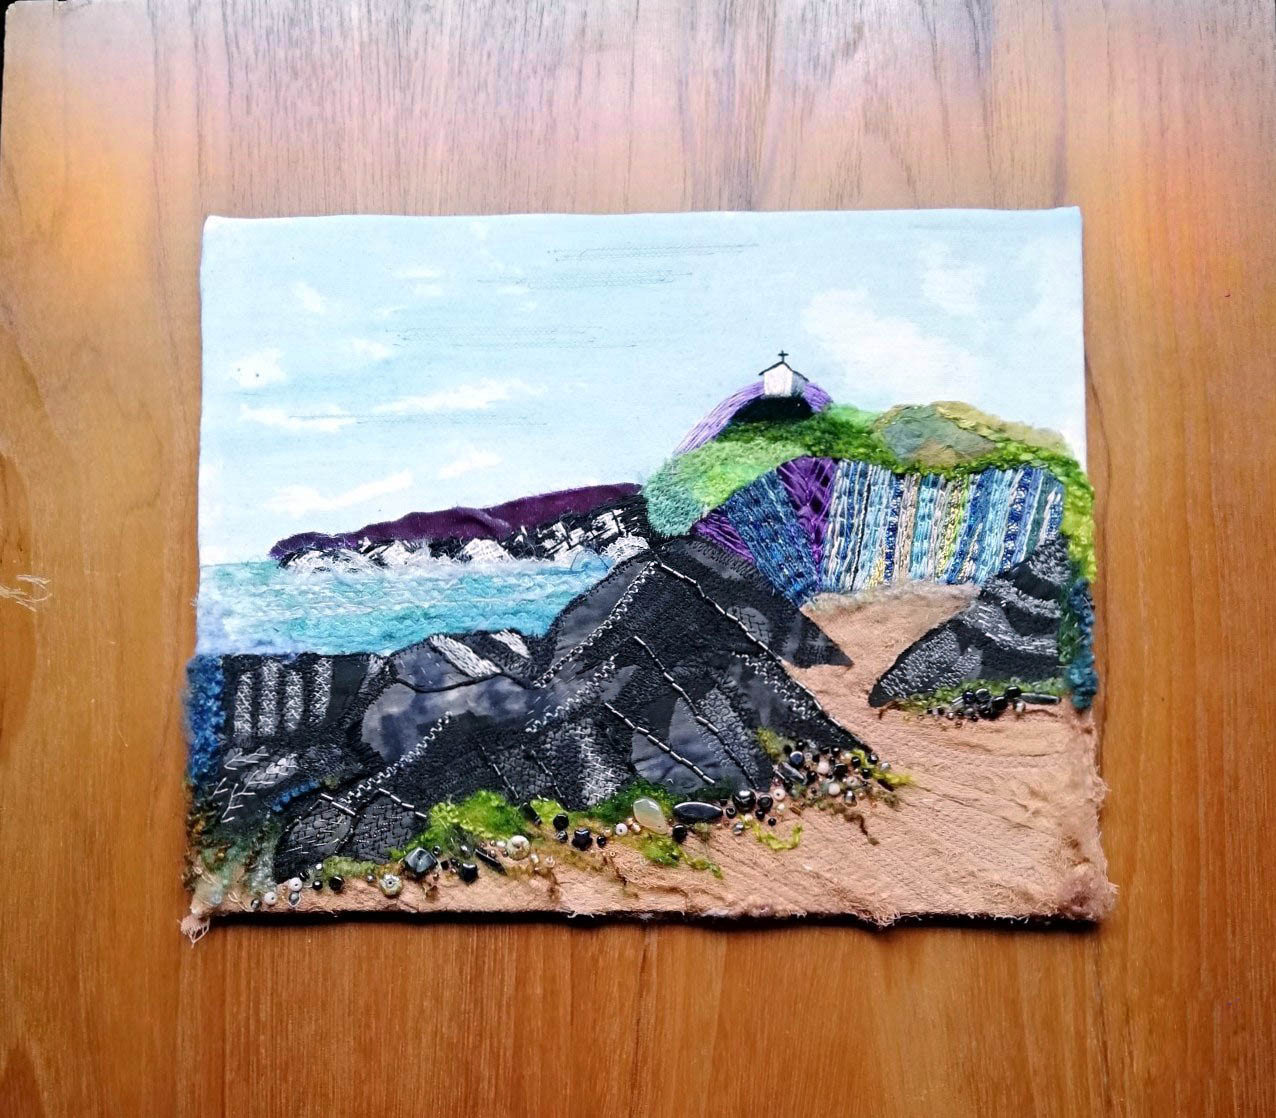 ST NICHOLAS CHAPEL, ILFRACOMBE by Carole Hawthorne, Bolton branch, hand painted background with hand stitch, machine embroidery and mixed media, Aurifil competition 2021